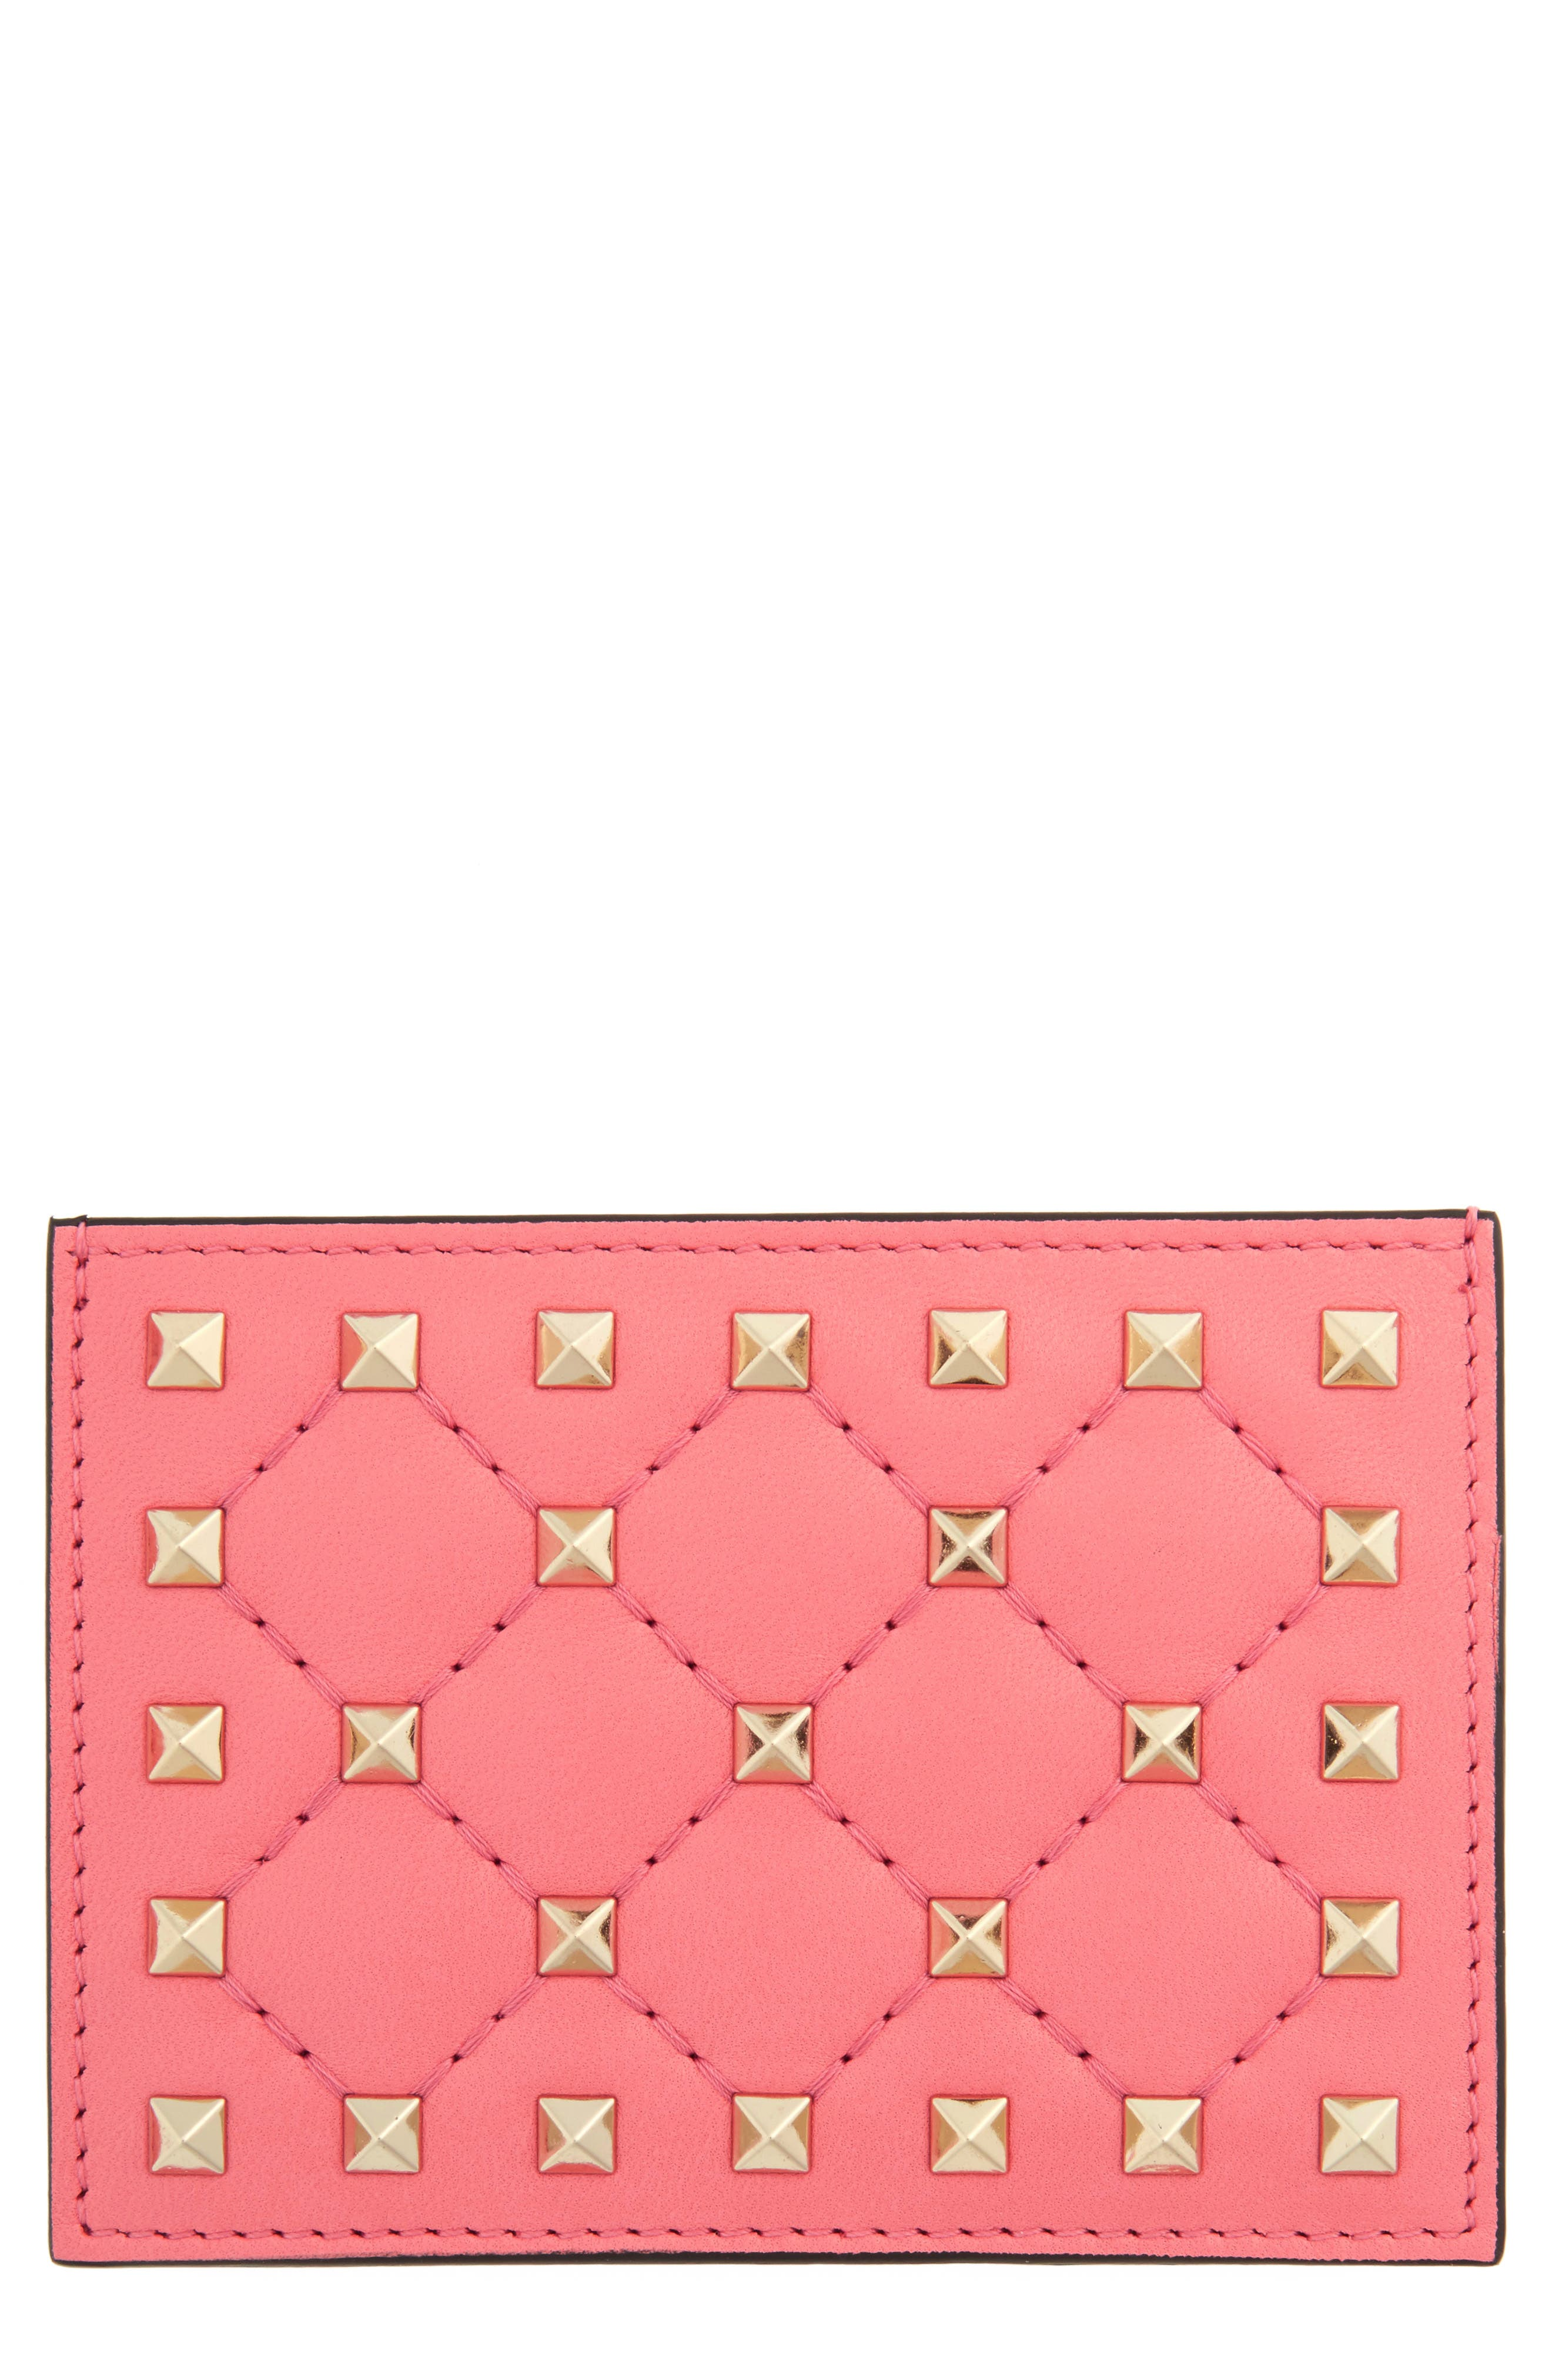 Rockstud Nappa Leather Card Case,                             Main thumbnail 1, color,                             Paradise Rose